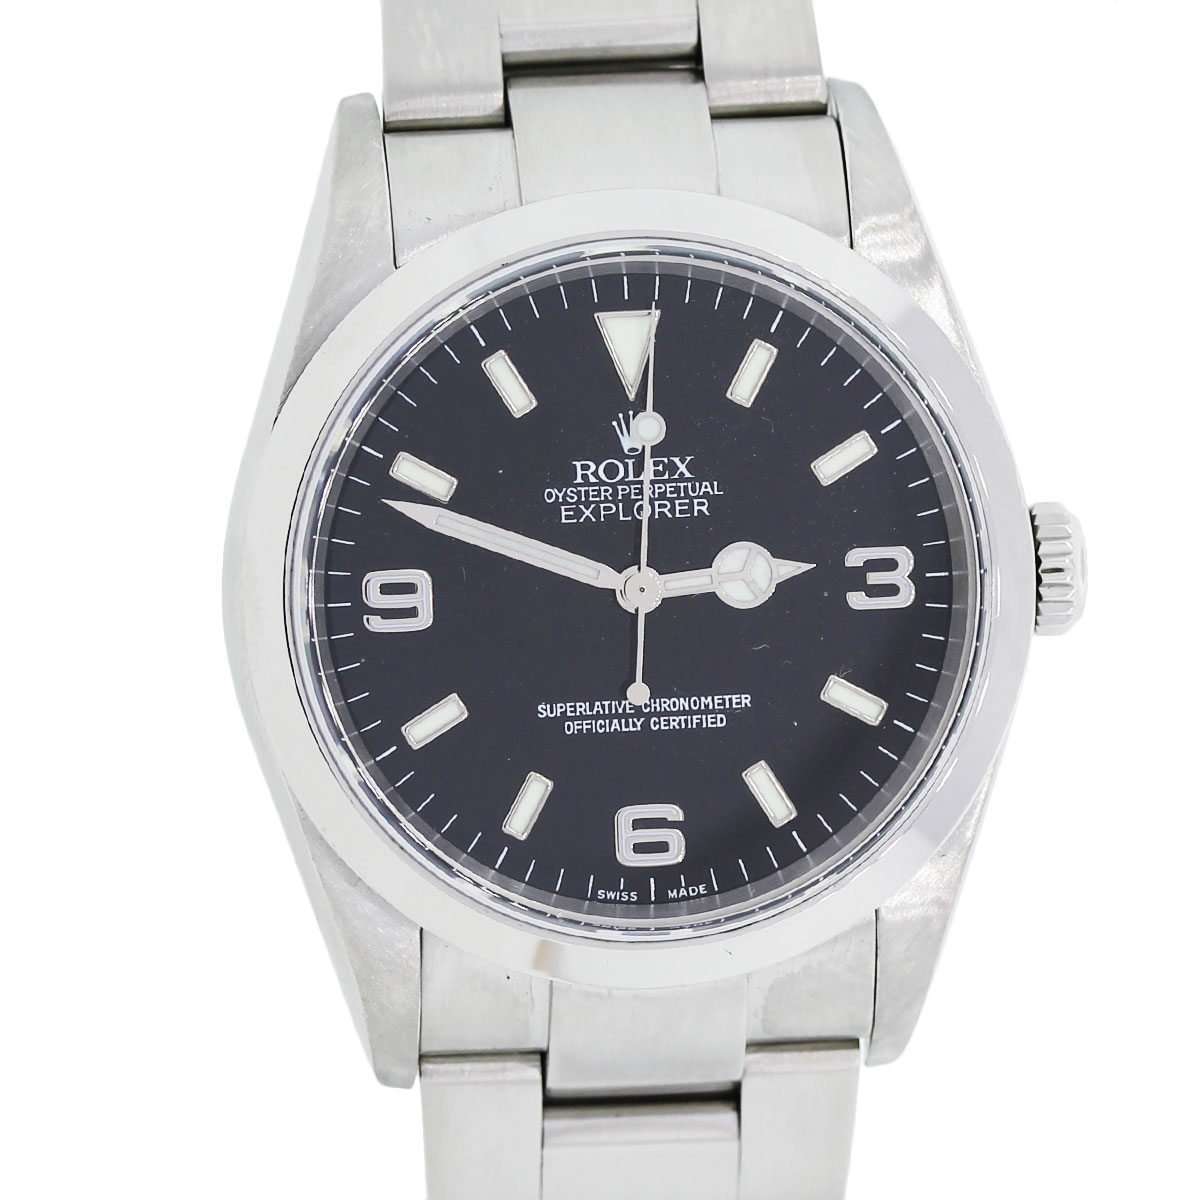 Rolex Oyster Perpetual Explorer I 214270 Stainless Steel